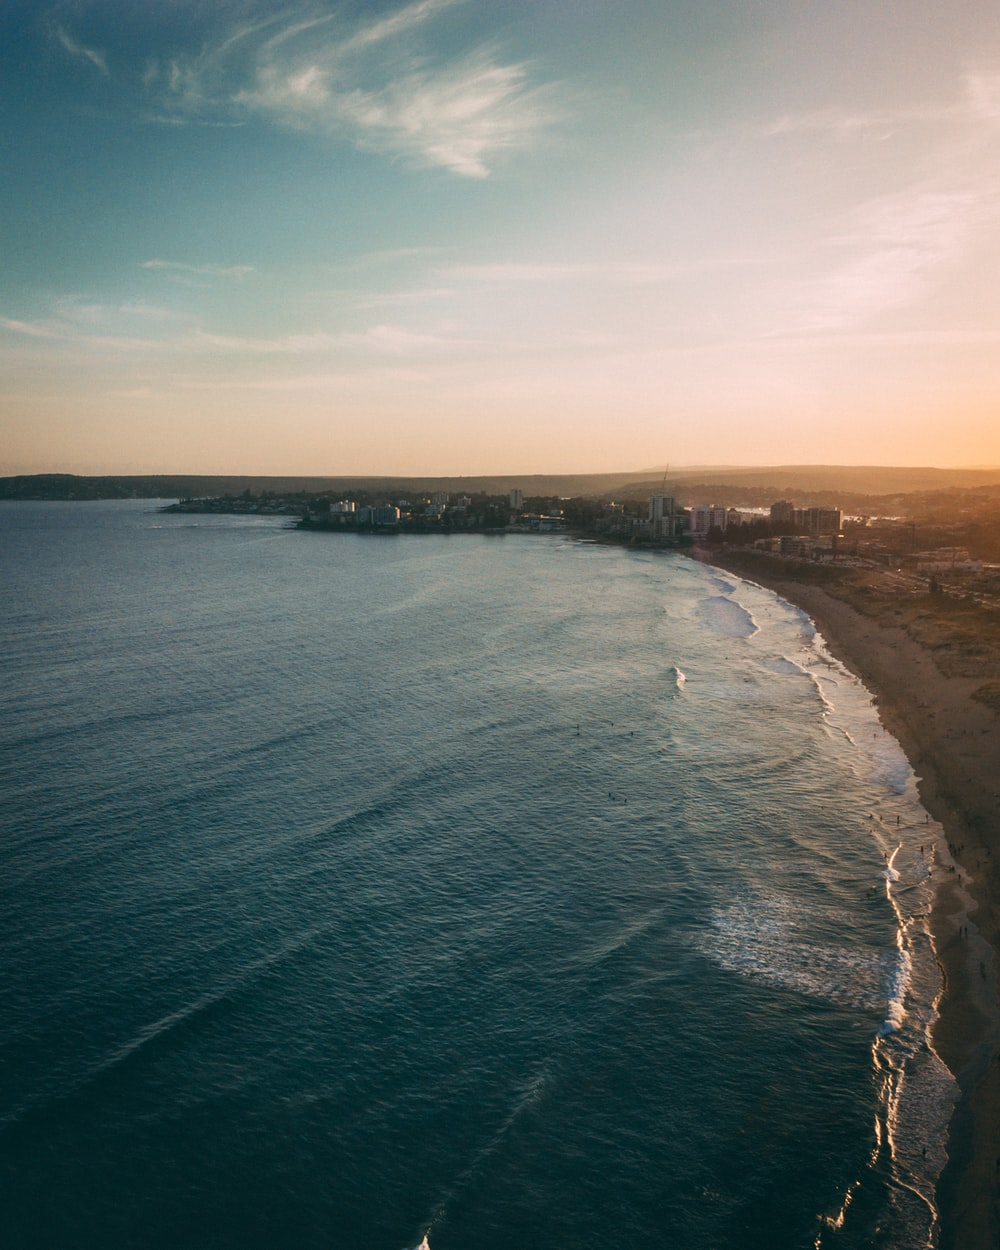 aerial view of ocean during daytime